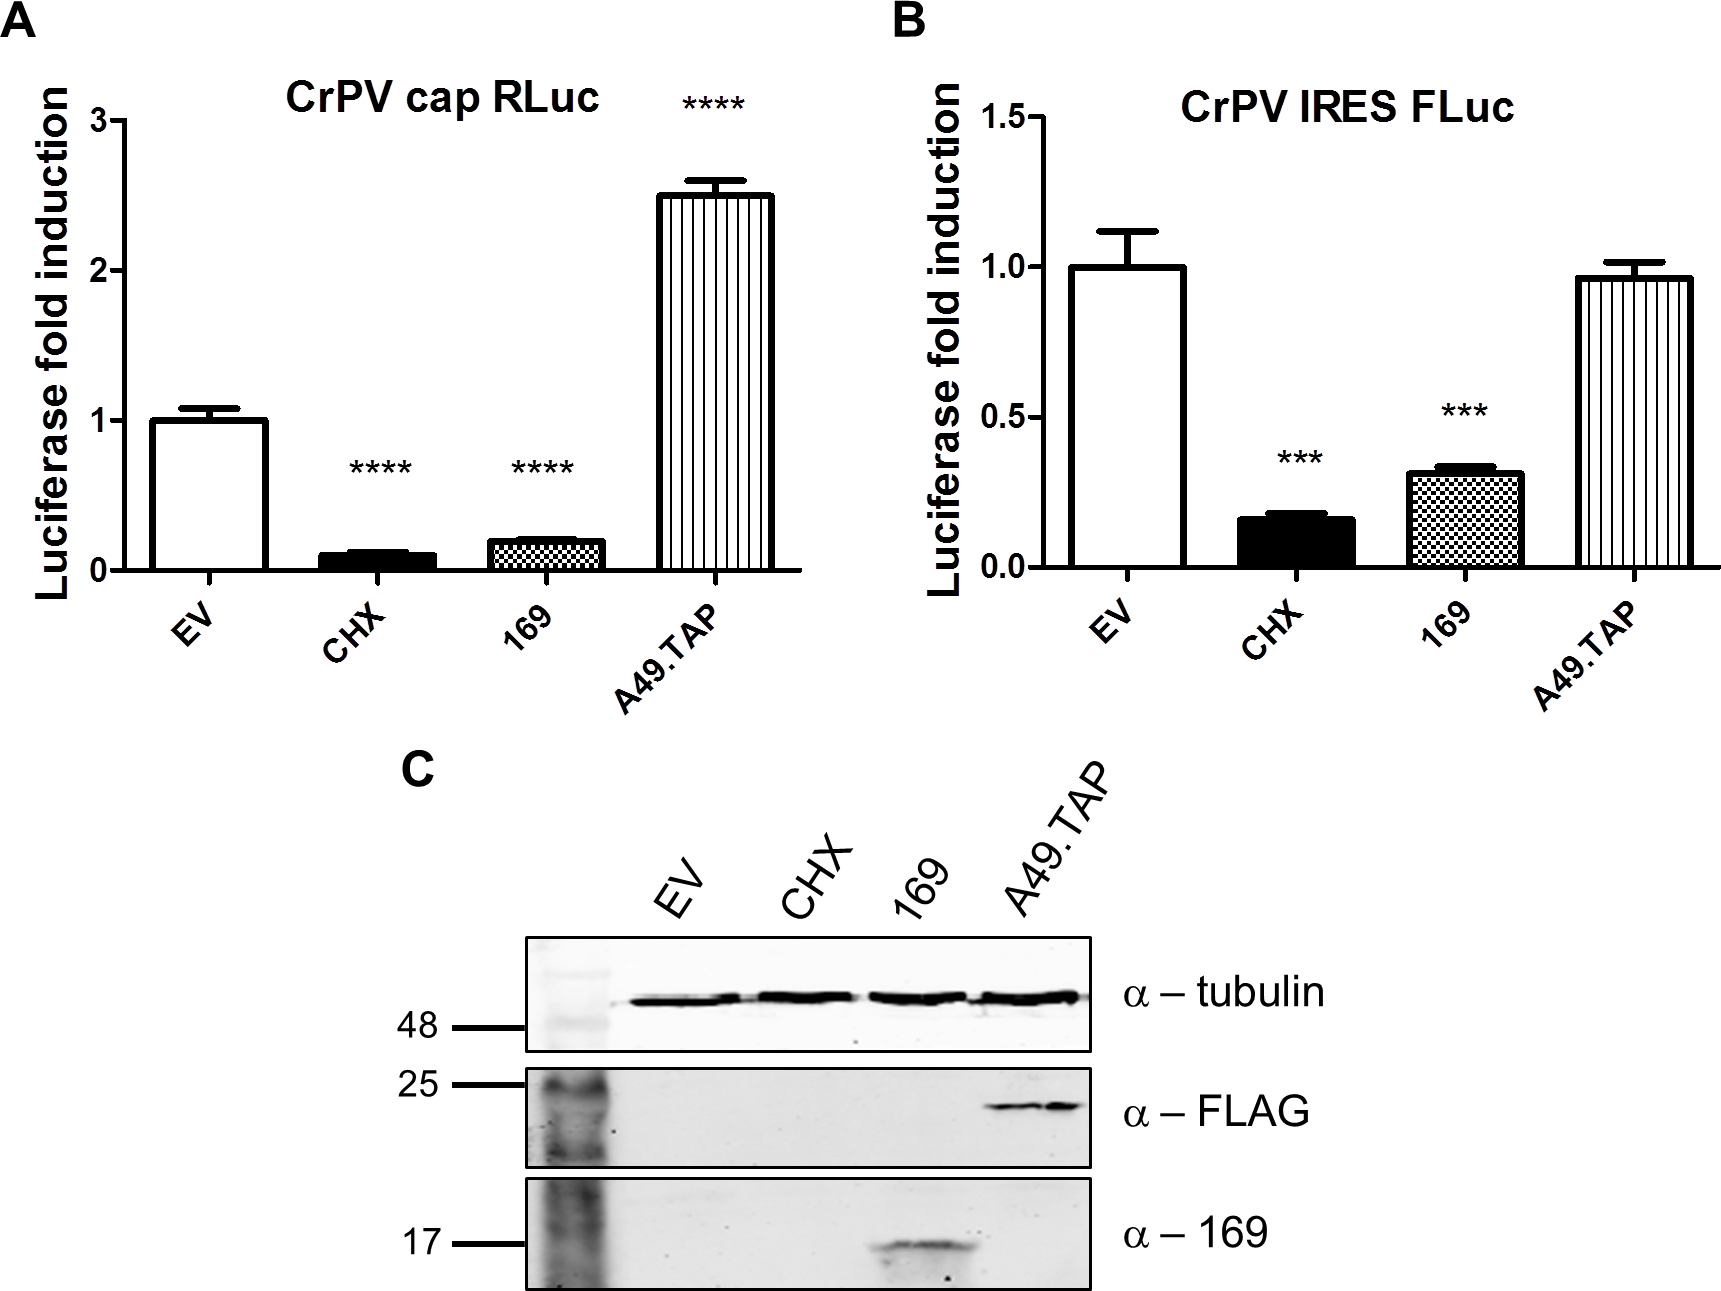 Protein 169 inhibits CrPV IRES-dependent translation.